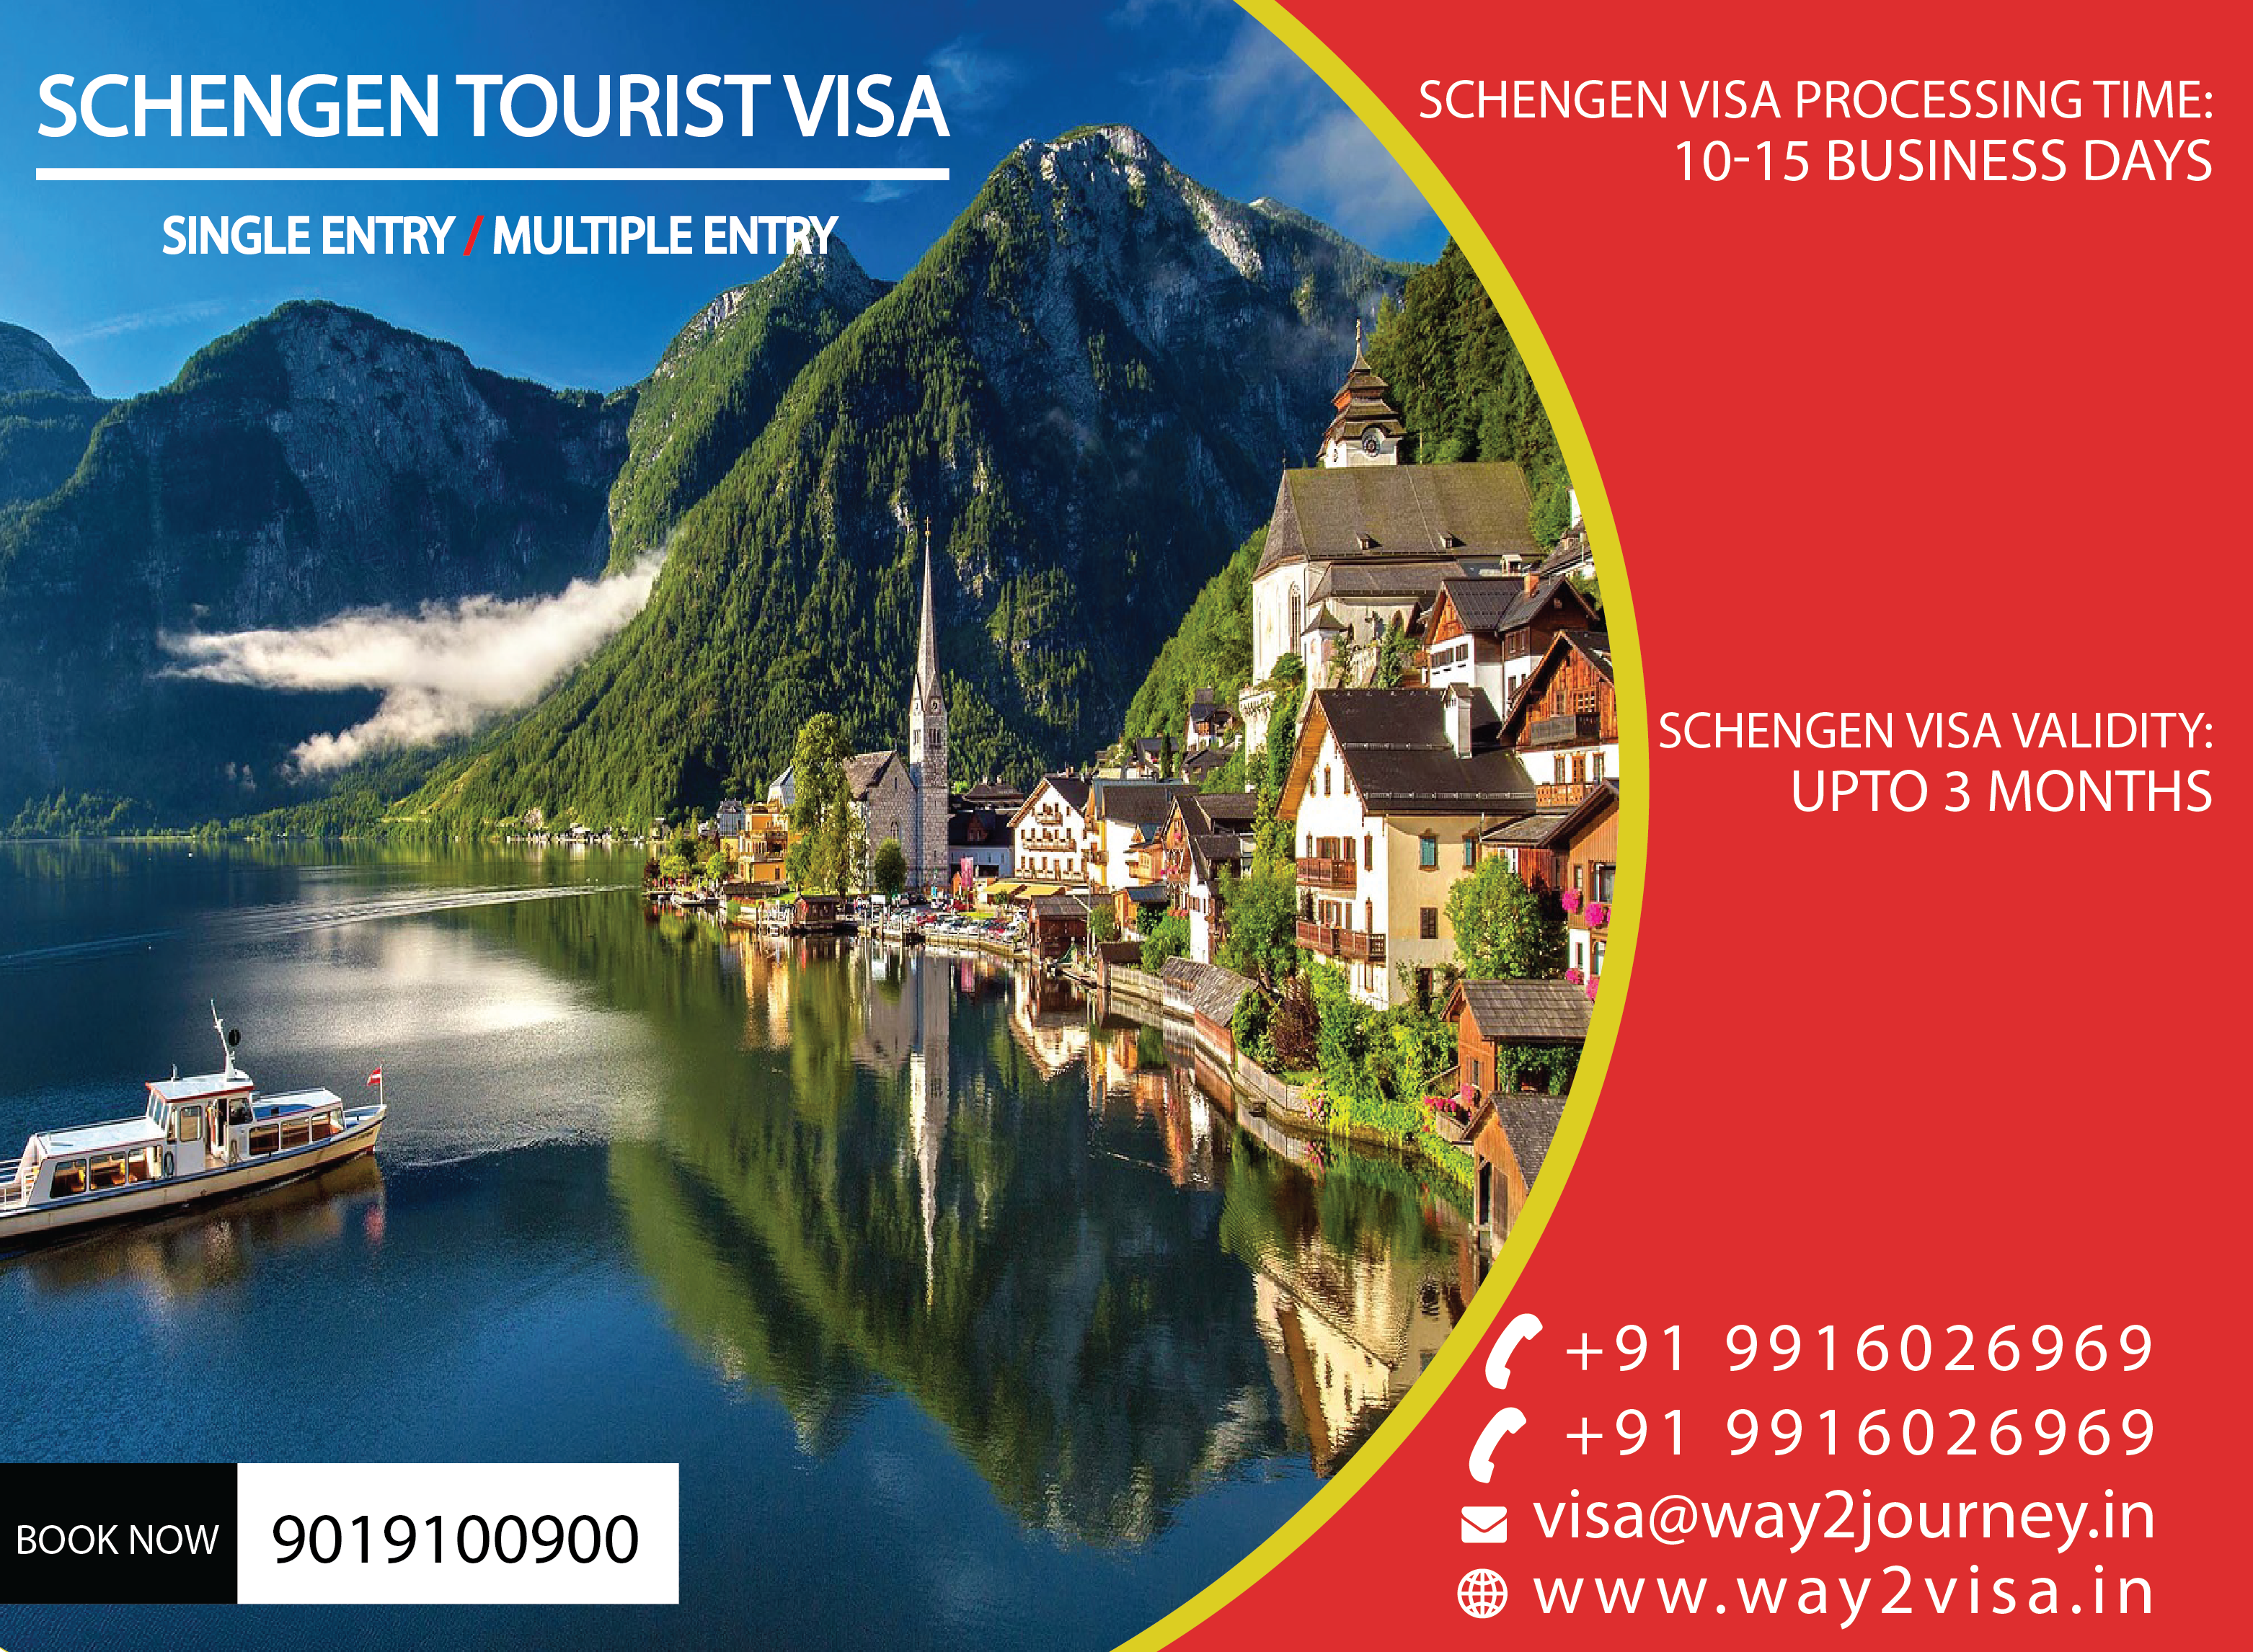 SCHENGEN Business Visit Visa / tourist, Visit Visa agency in bangalore, mumbai, india